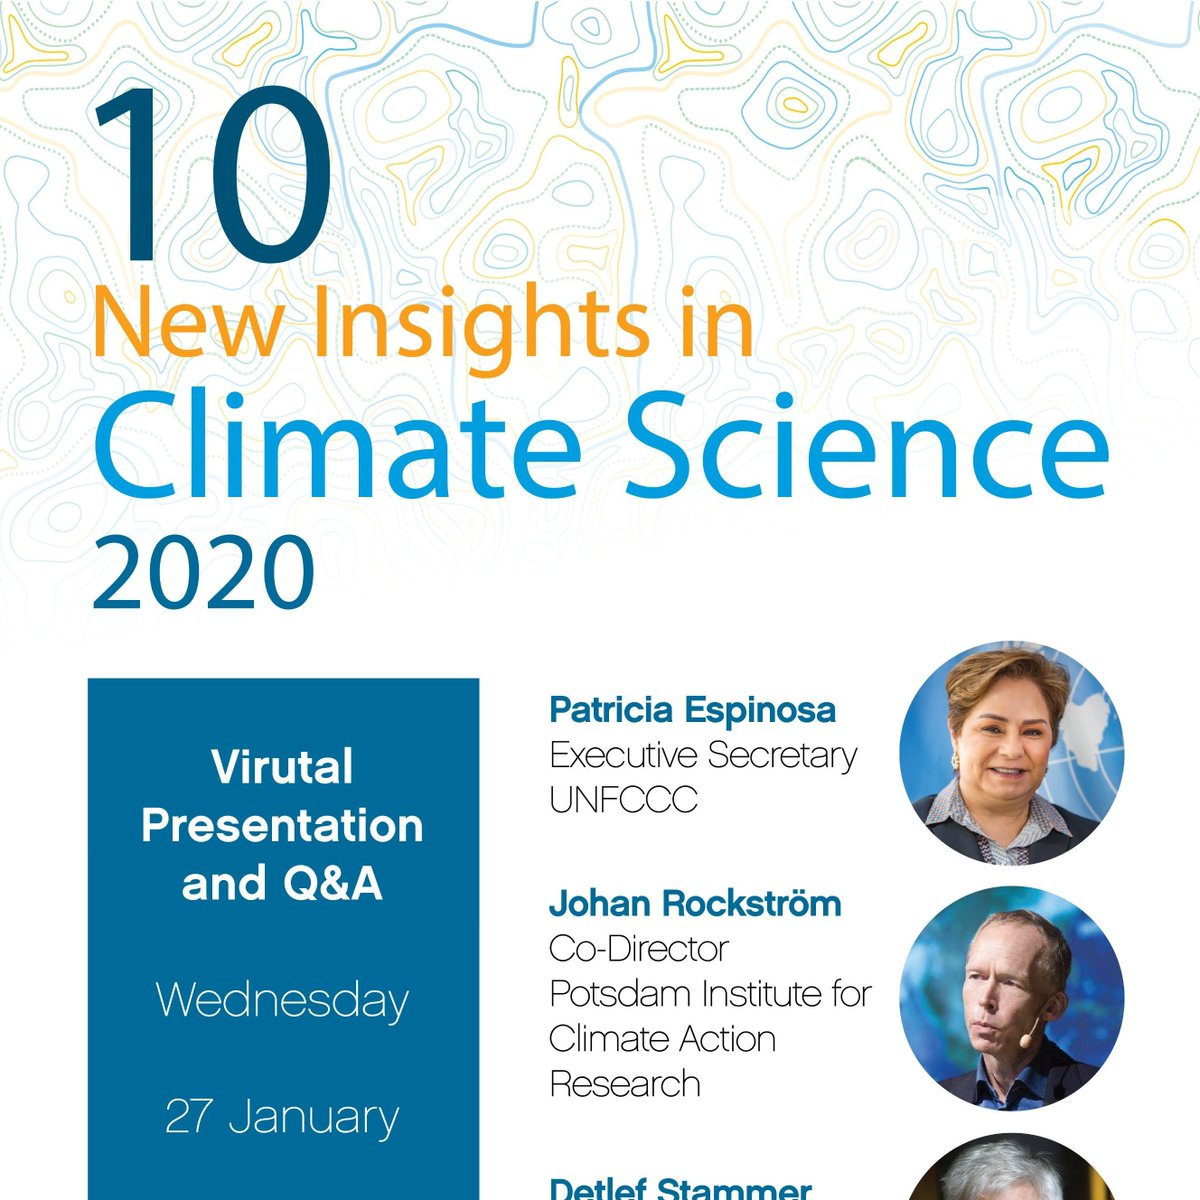 Interested in 10 new insights on #climatechange - must-knows, compiled by 57 researchers from 21 countries @FutureEarth? Join the online presentation by @PEspinosaC @UNFCCC, @jrockstrom @PIK_Climate et al on 27 Jan, 17.00 CET. Register here: